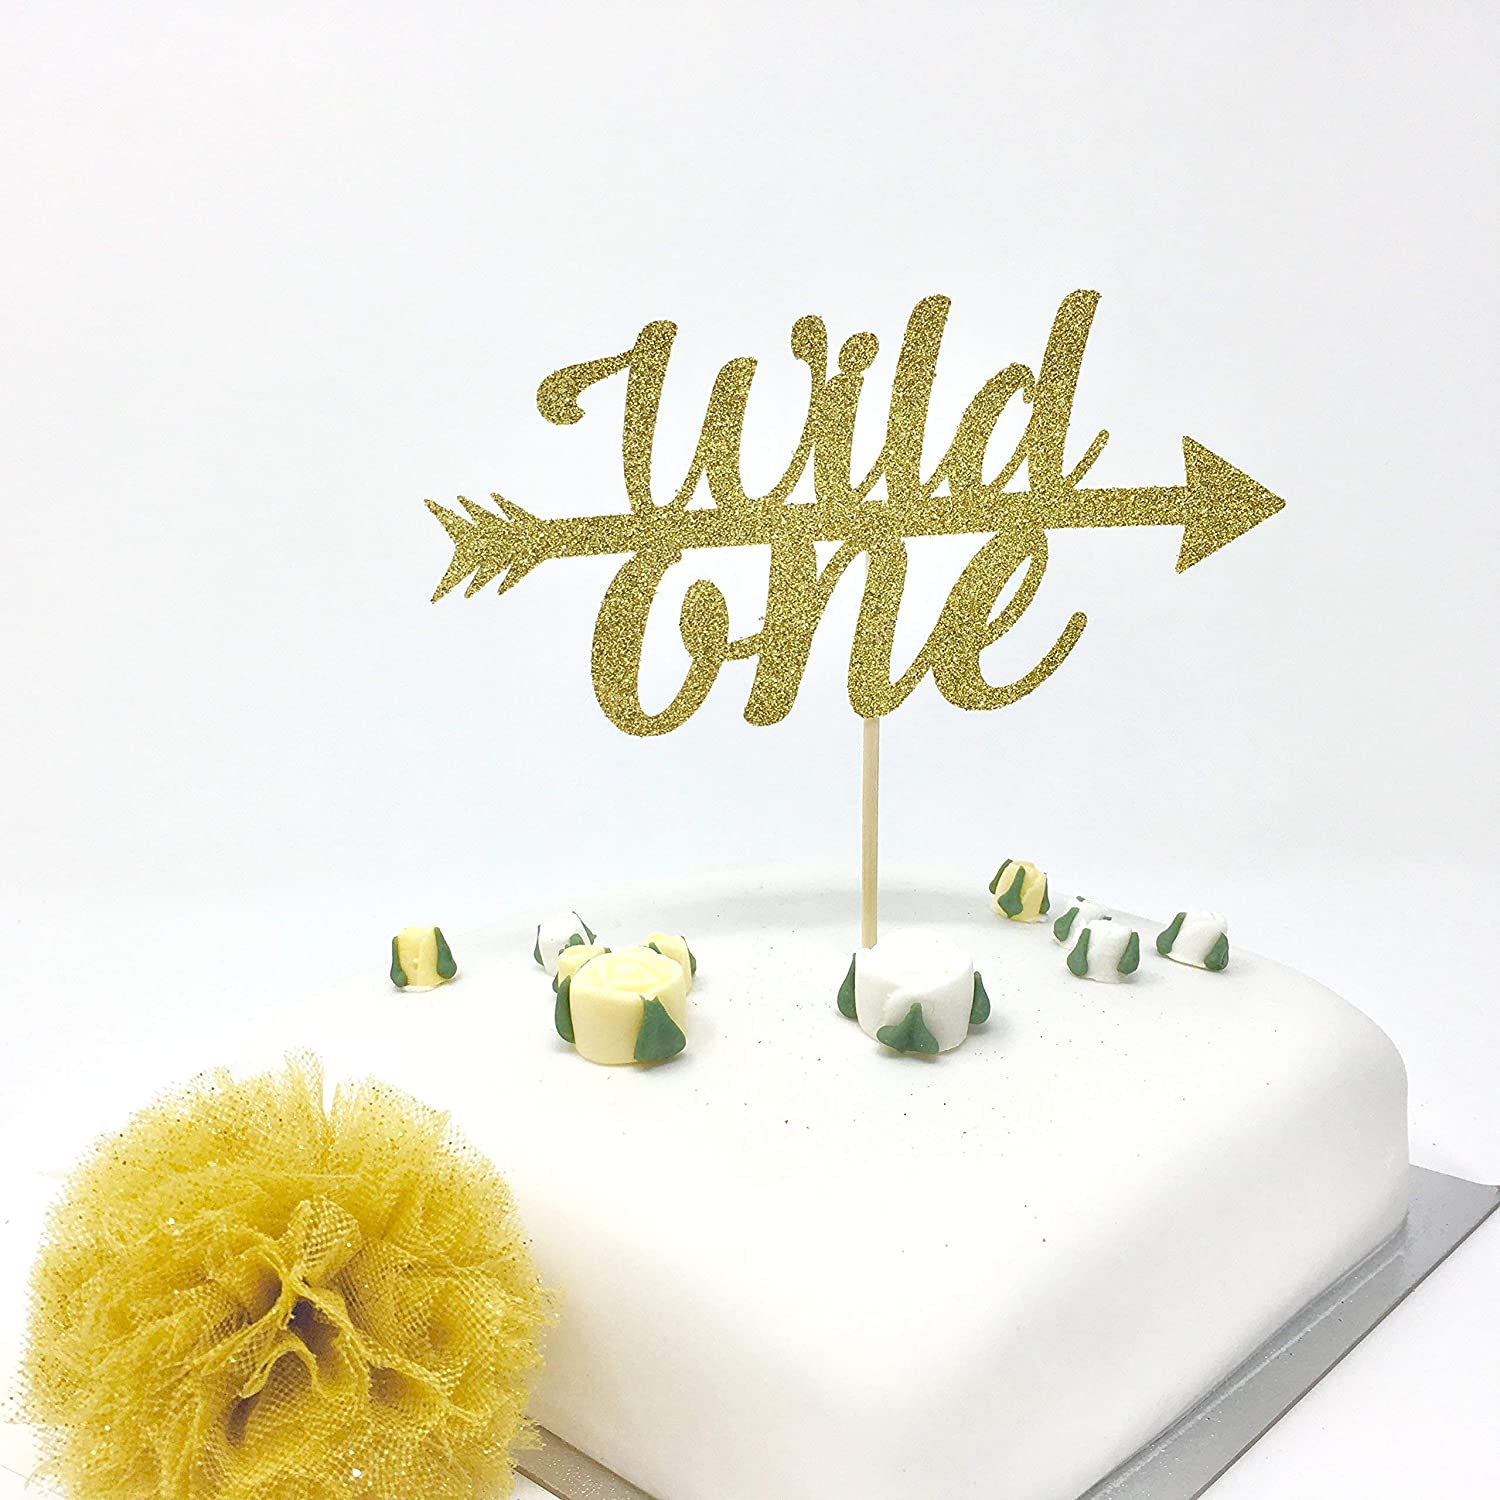 Swell Wild One Cake Topper First Birthday Party Decor 1St Birthday Birthday Cards Printable Nowaargucafe Filternl